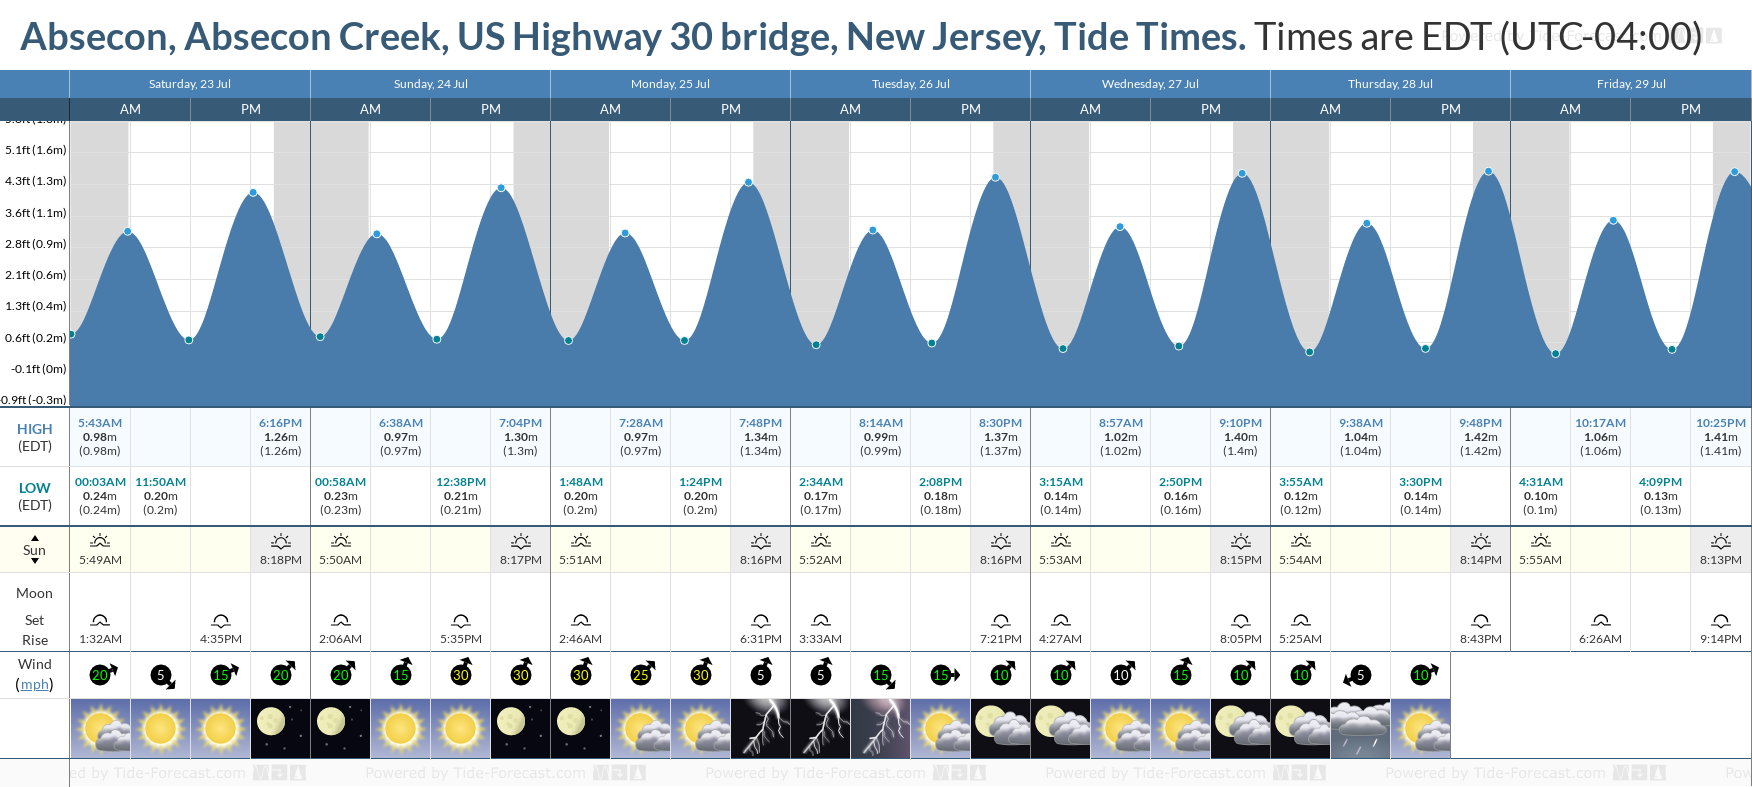 Absecon, Absecon Creek, US Highway 30 bridge, New Jersey Tide Chart including high and low tide tide times for the next 7 days